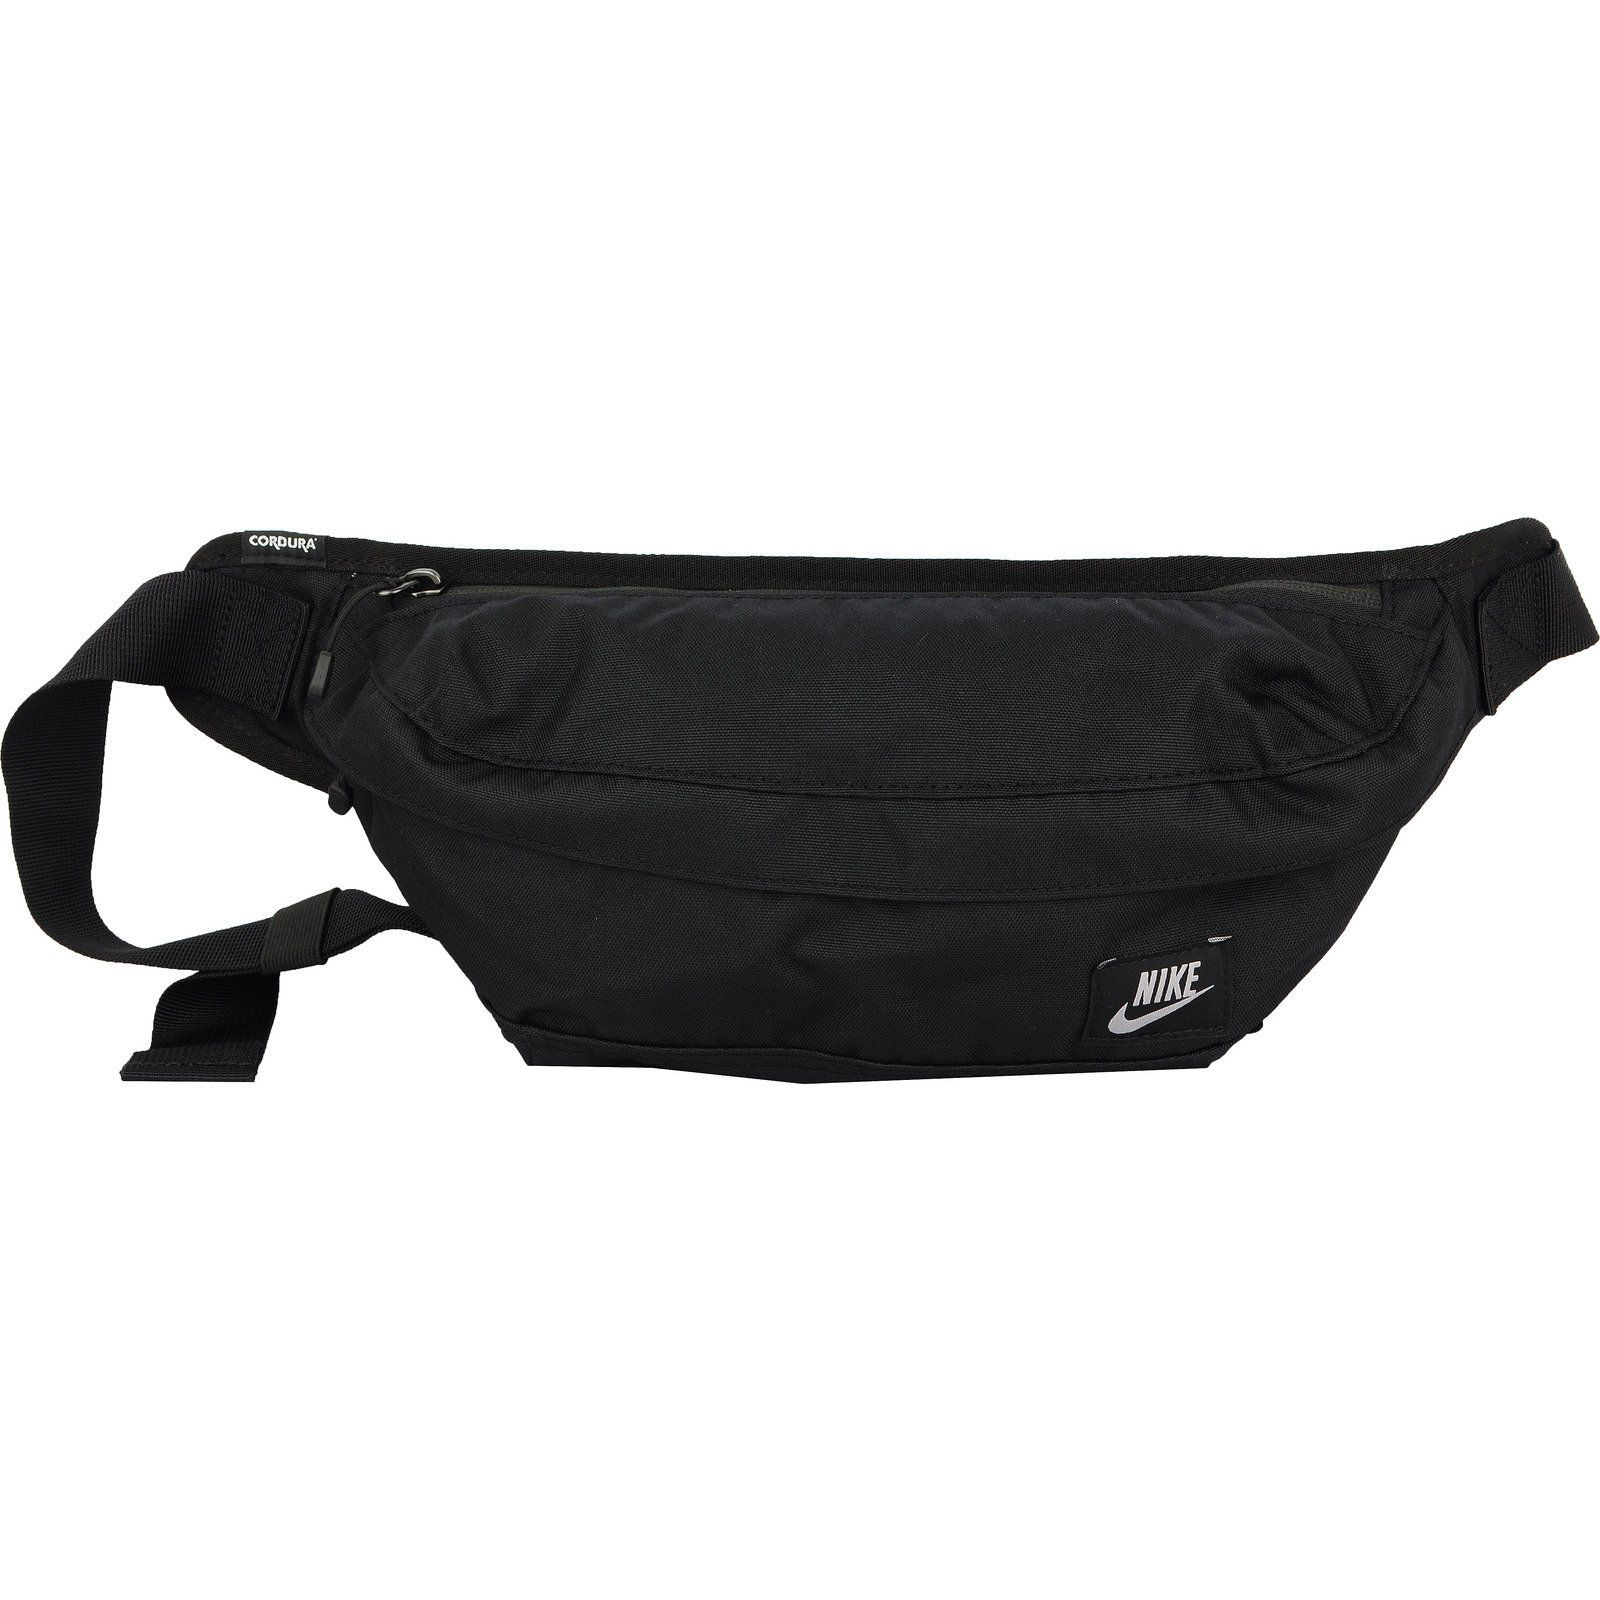 94fb56a2c0e4 Amazon.com  NIKE HOOD Cordura Fanny Waist Pack (Black)  Sports   Outdoors